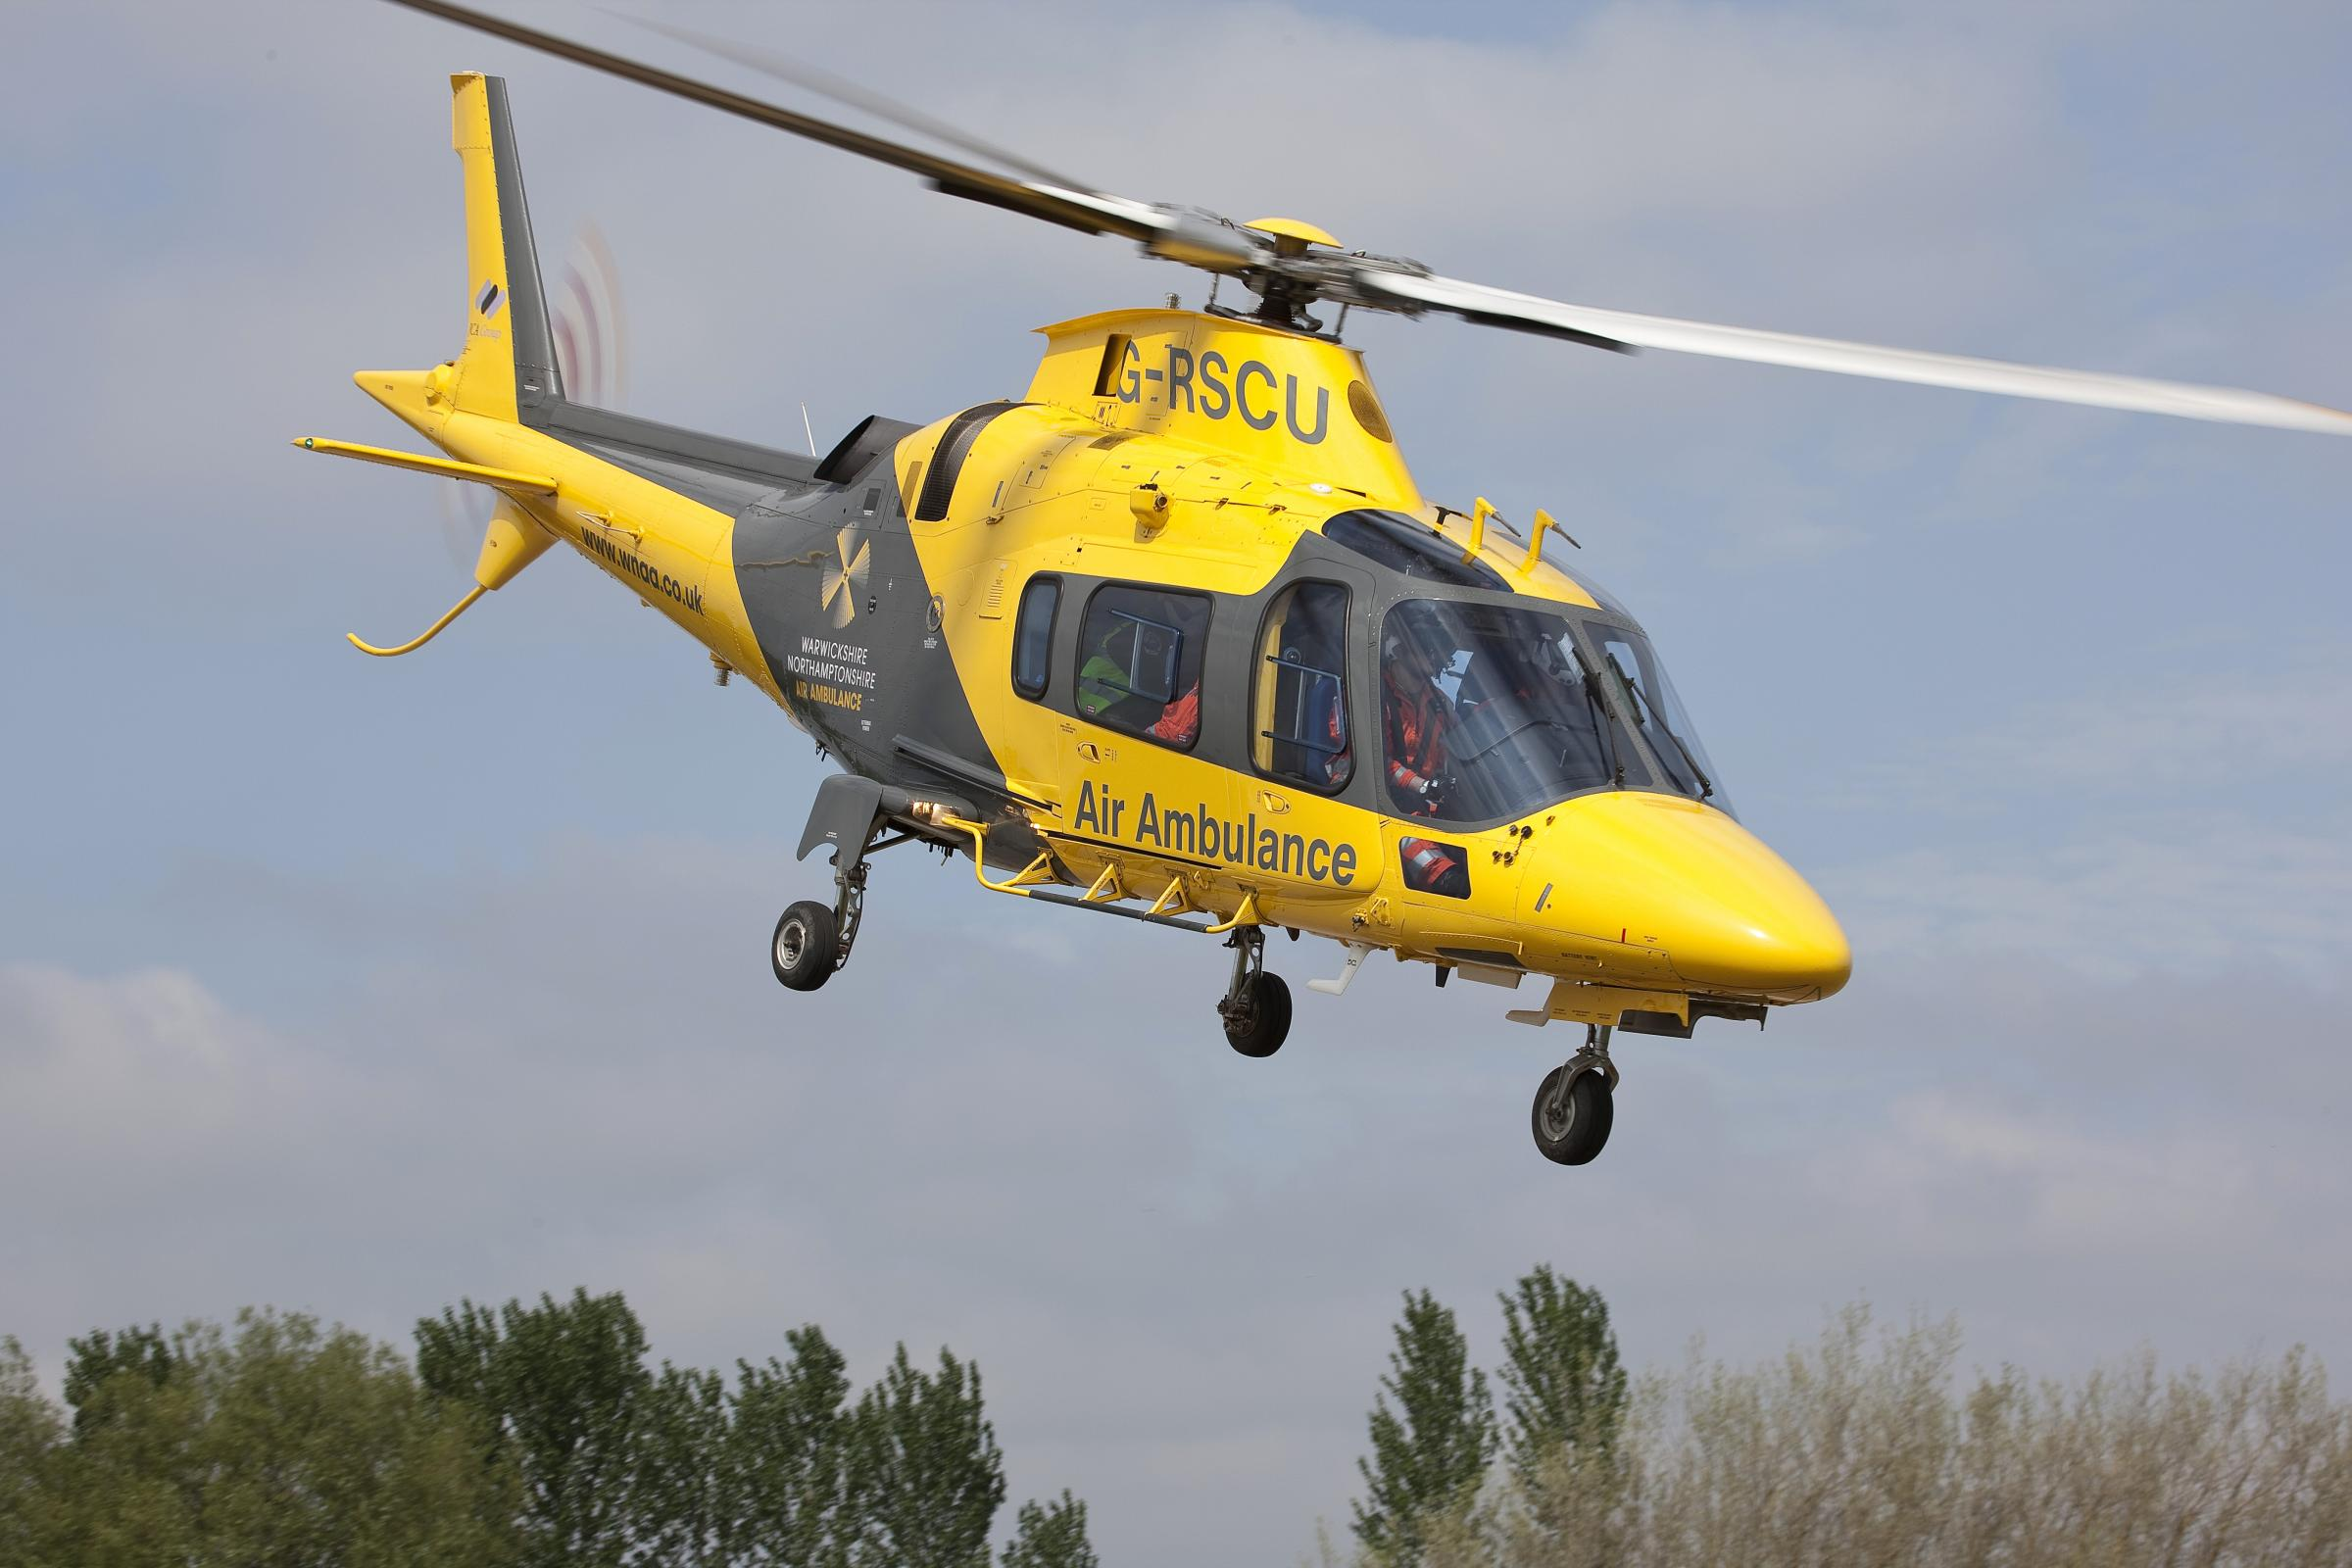 Air ambulance called to Shipston twice in one day